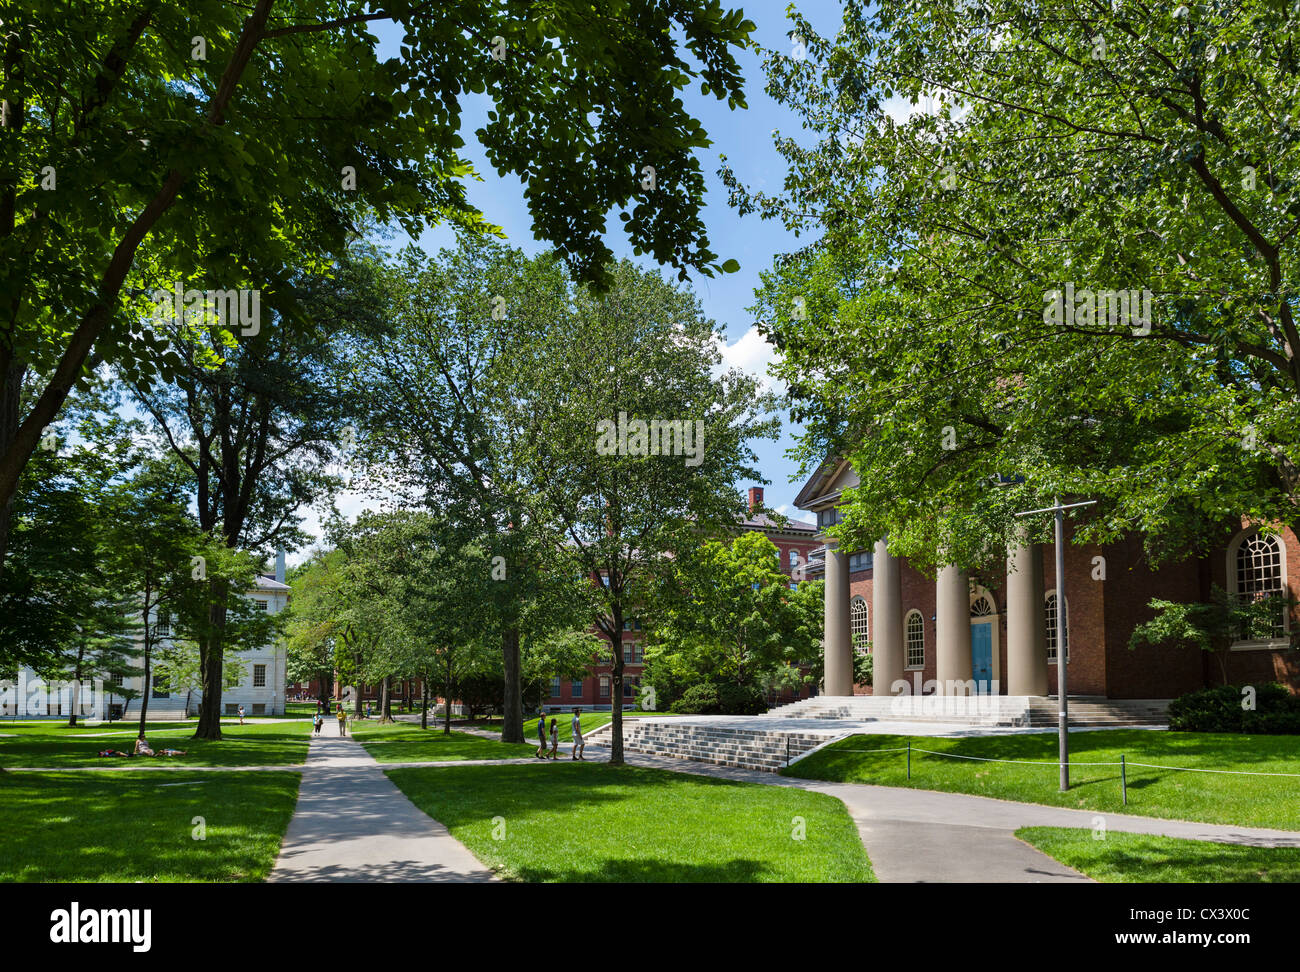 Harvard Yard with the Memorial Church to the right , Harvard University, Cambridge, Boston, Massachusetts, USA - Stock Image